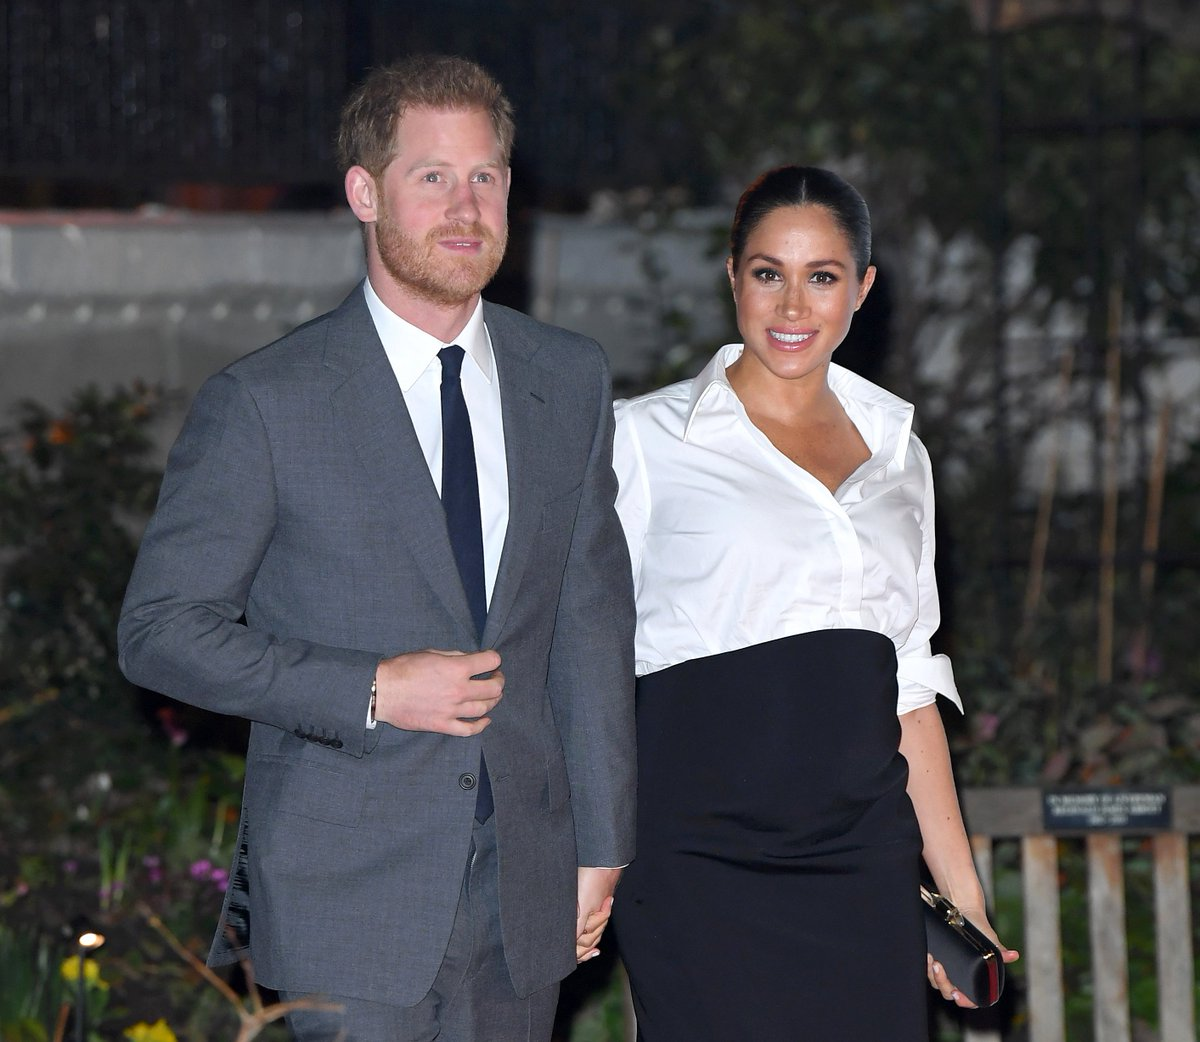 Daily Express's photo on Meghan Markle